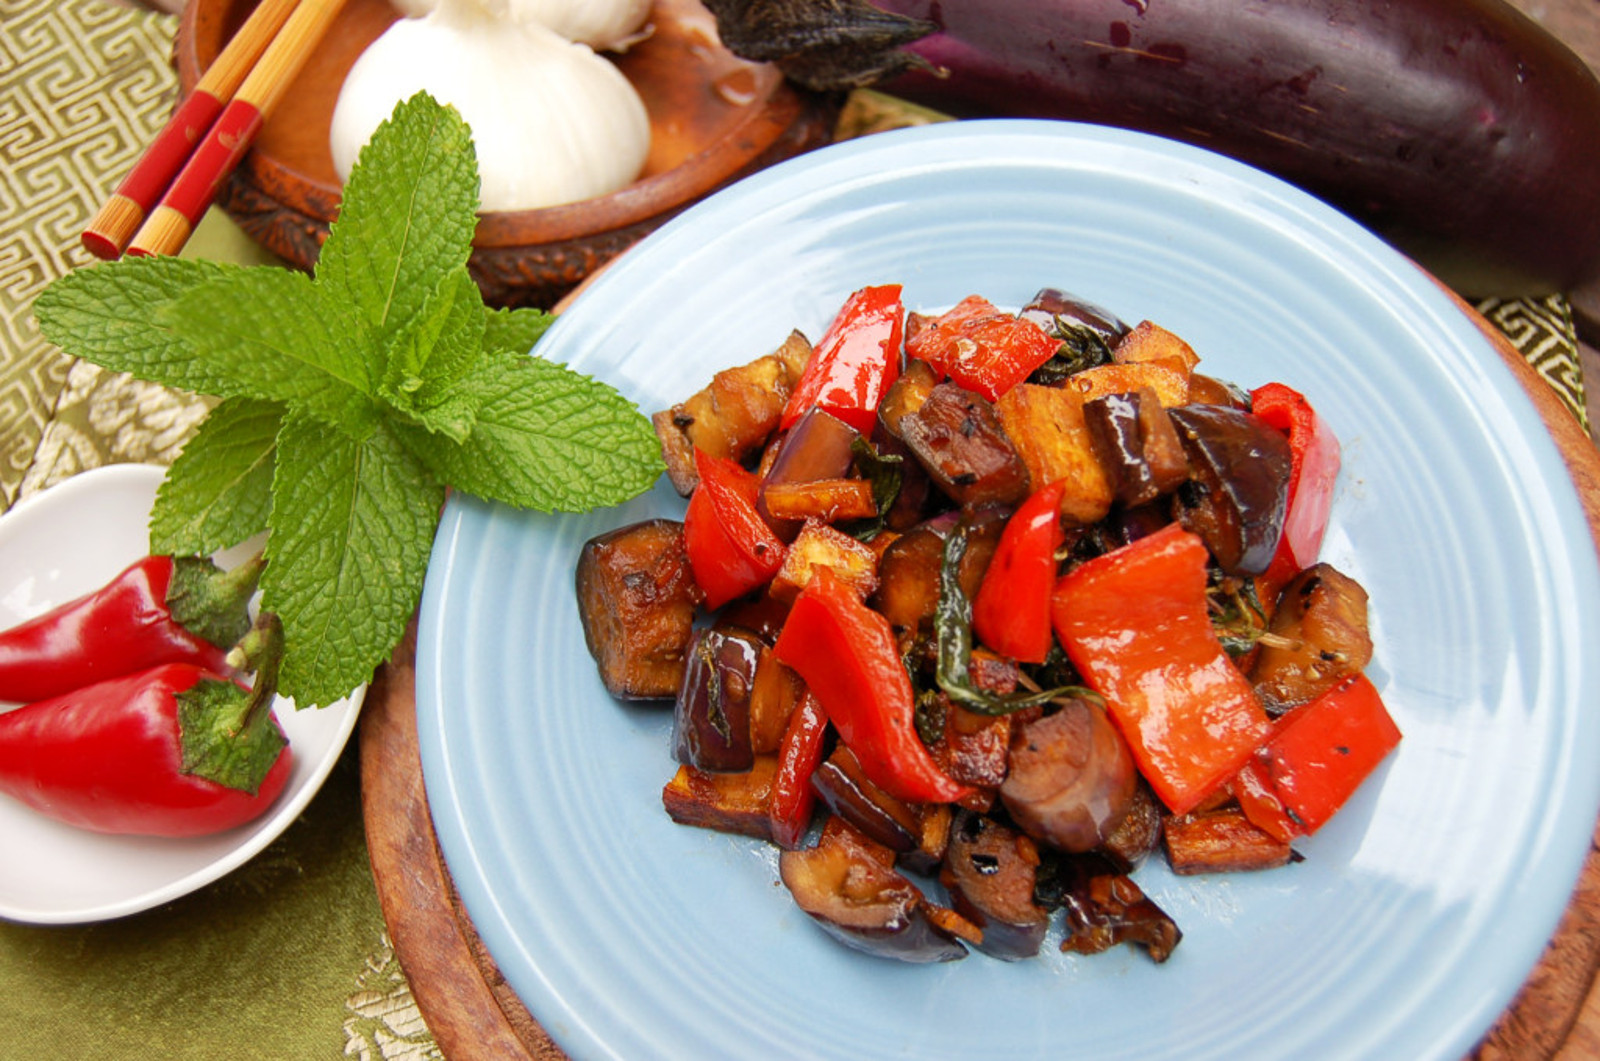 10 Mouthwatering Ways to Cook With Eggplant